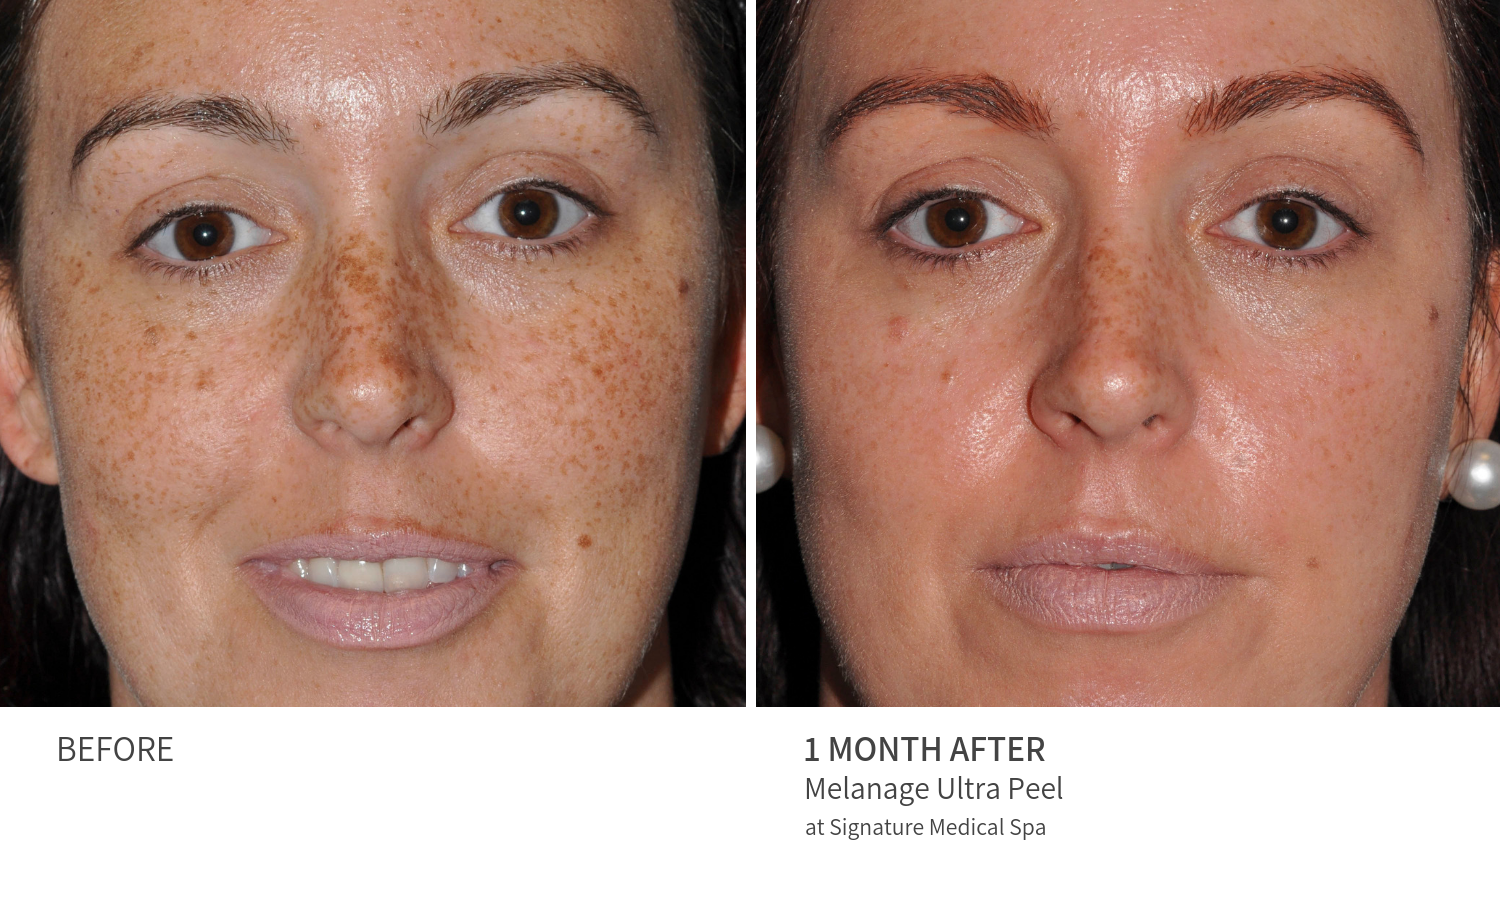 Before and After Melanage Ultra Peel